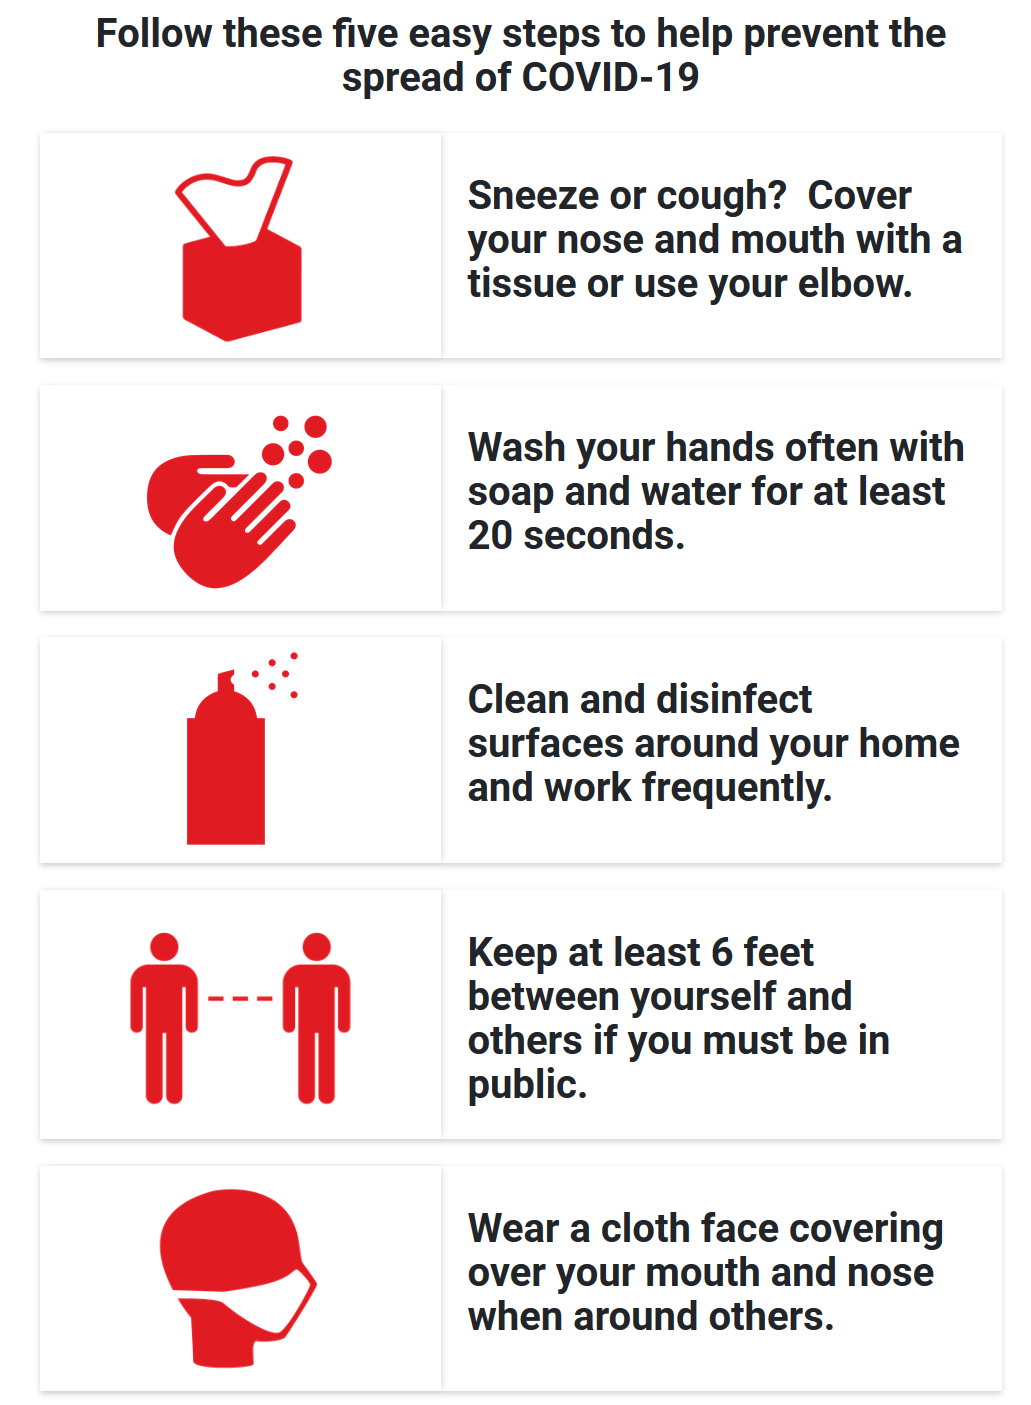 Read full CDC information. Follow these five easy steps to help prevent the spread of COVID-19